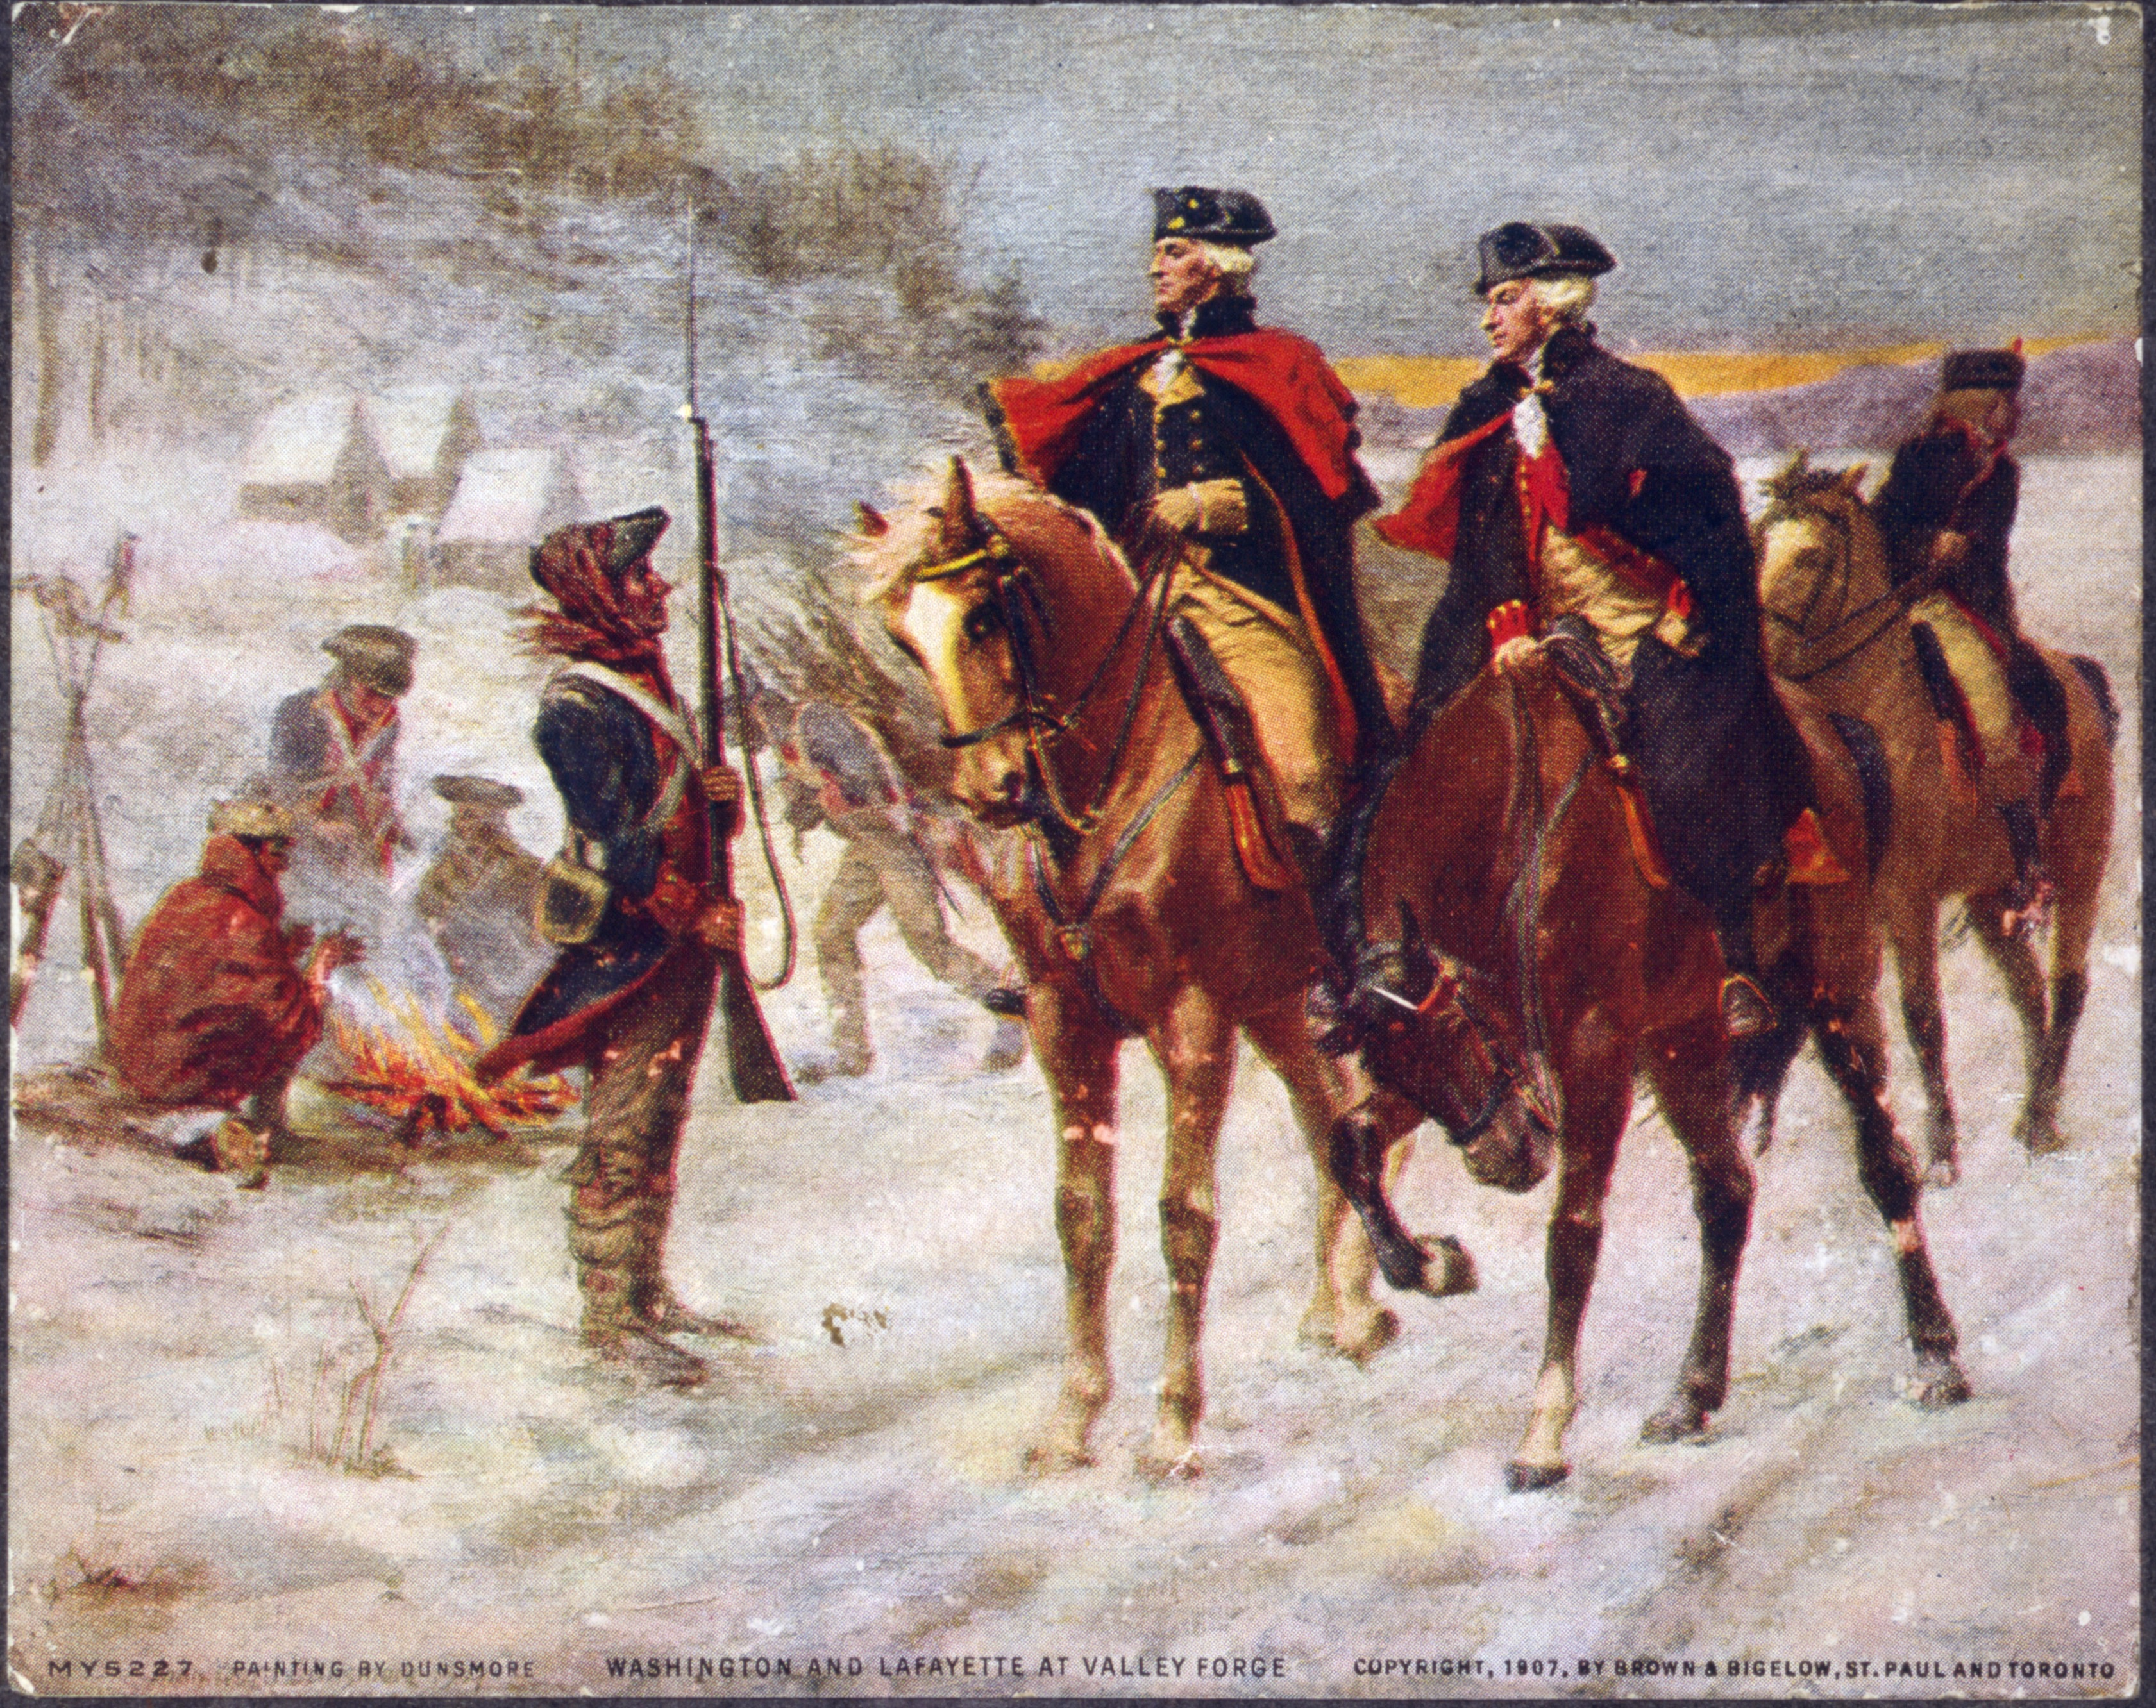 General Washington and Lafayette look over the troops at Valley Forge.